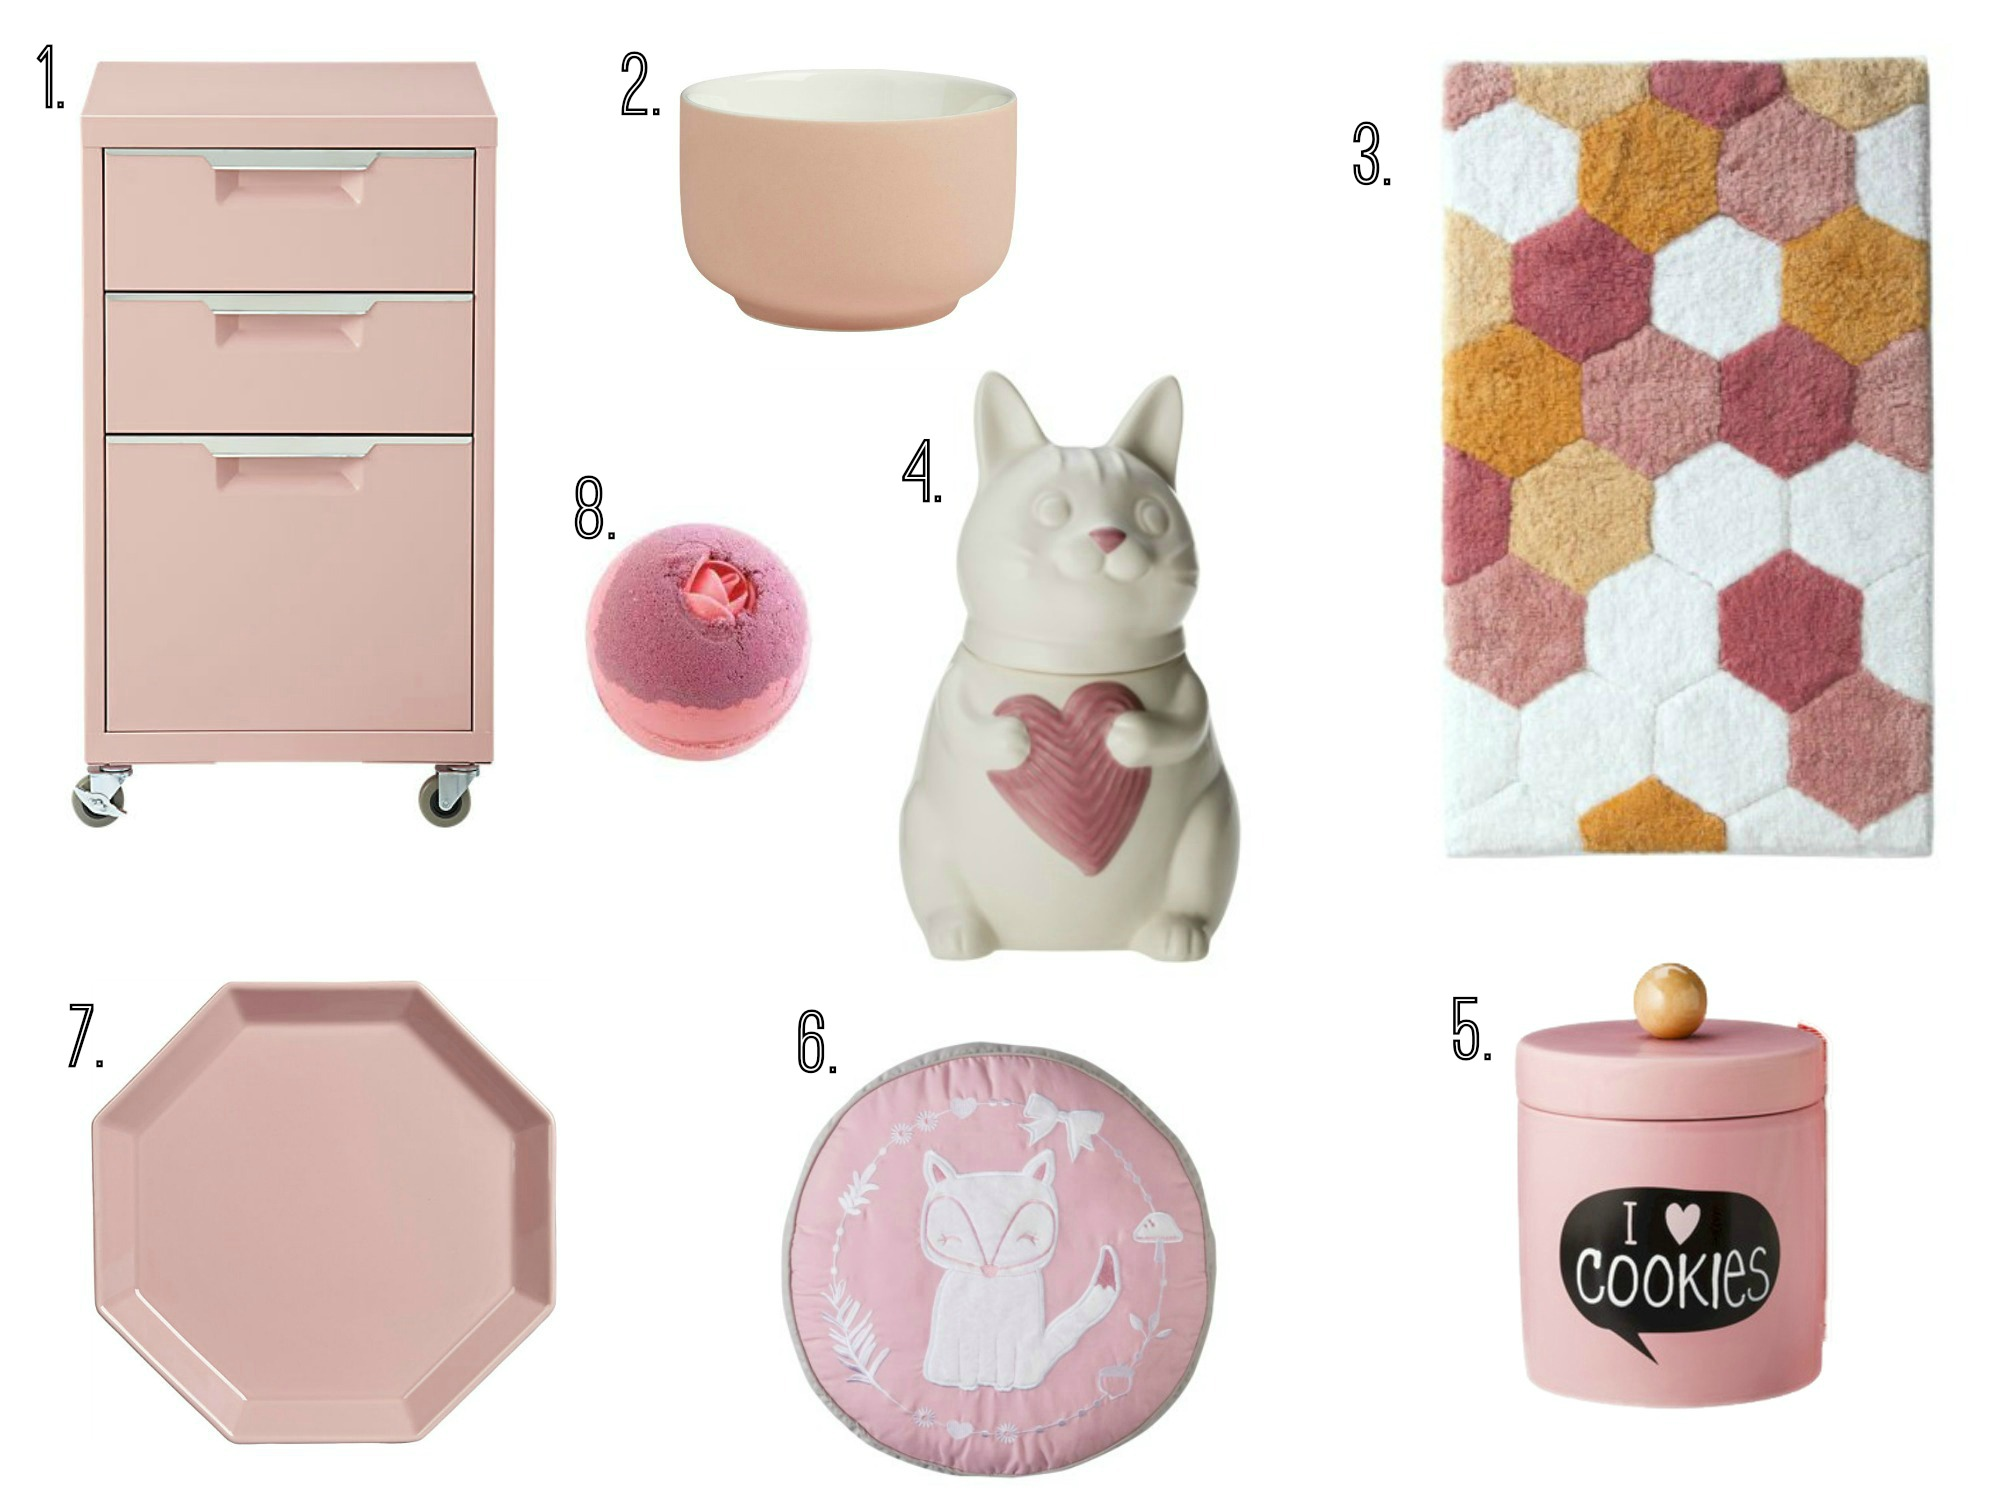 allthingspinkcollagewithnumbers.jpg